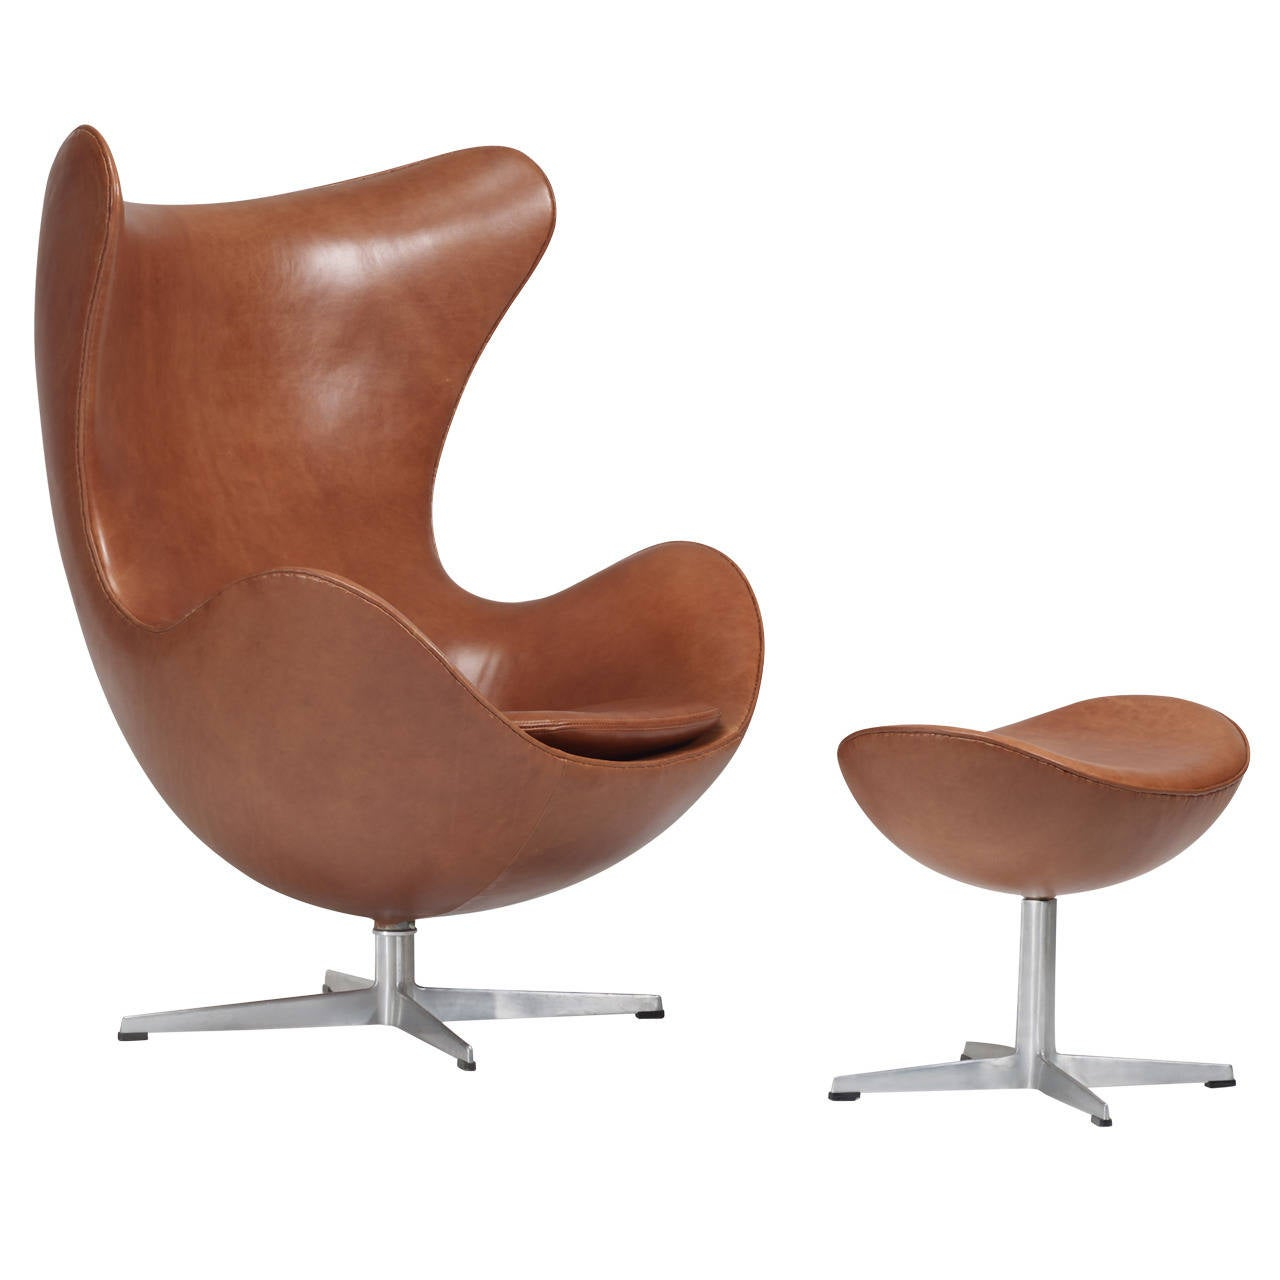 This arne jacobsen swan chair in cognac leather by fritz hansen is no - Early Arne Jacobsen Egg Chair And Ottoman For Fritz Hansen Pair Available 1